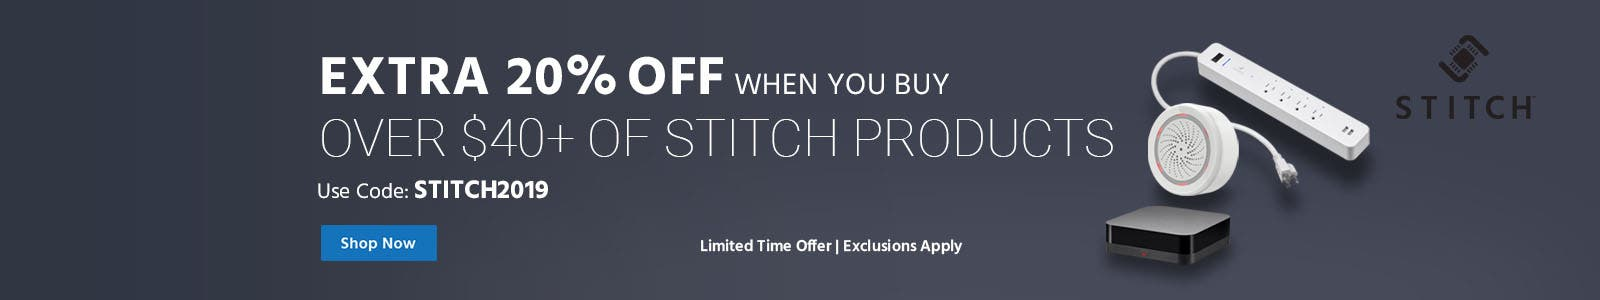 Extra 20% off when you buy over $40+ of STITCH Products - Use Code: STITCH2019 - Shop Now - Limited Time Offer | Exclusions Apply